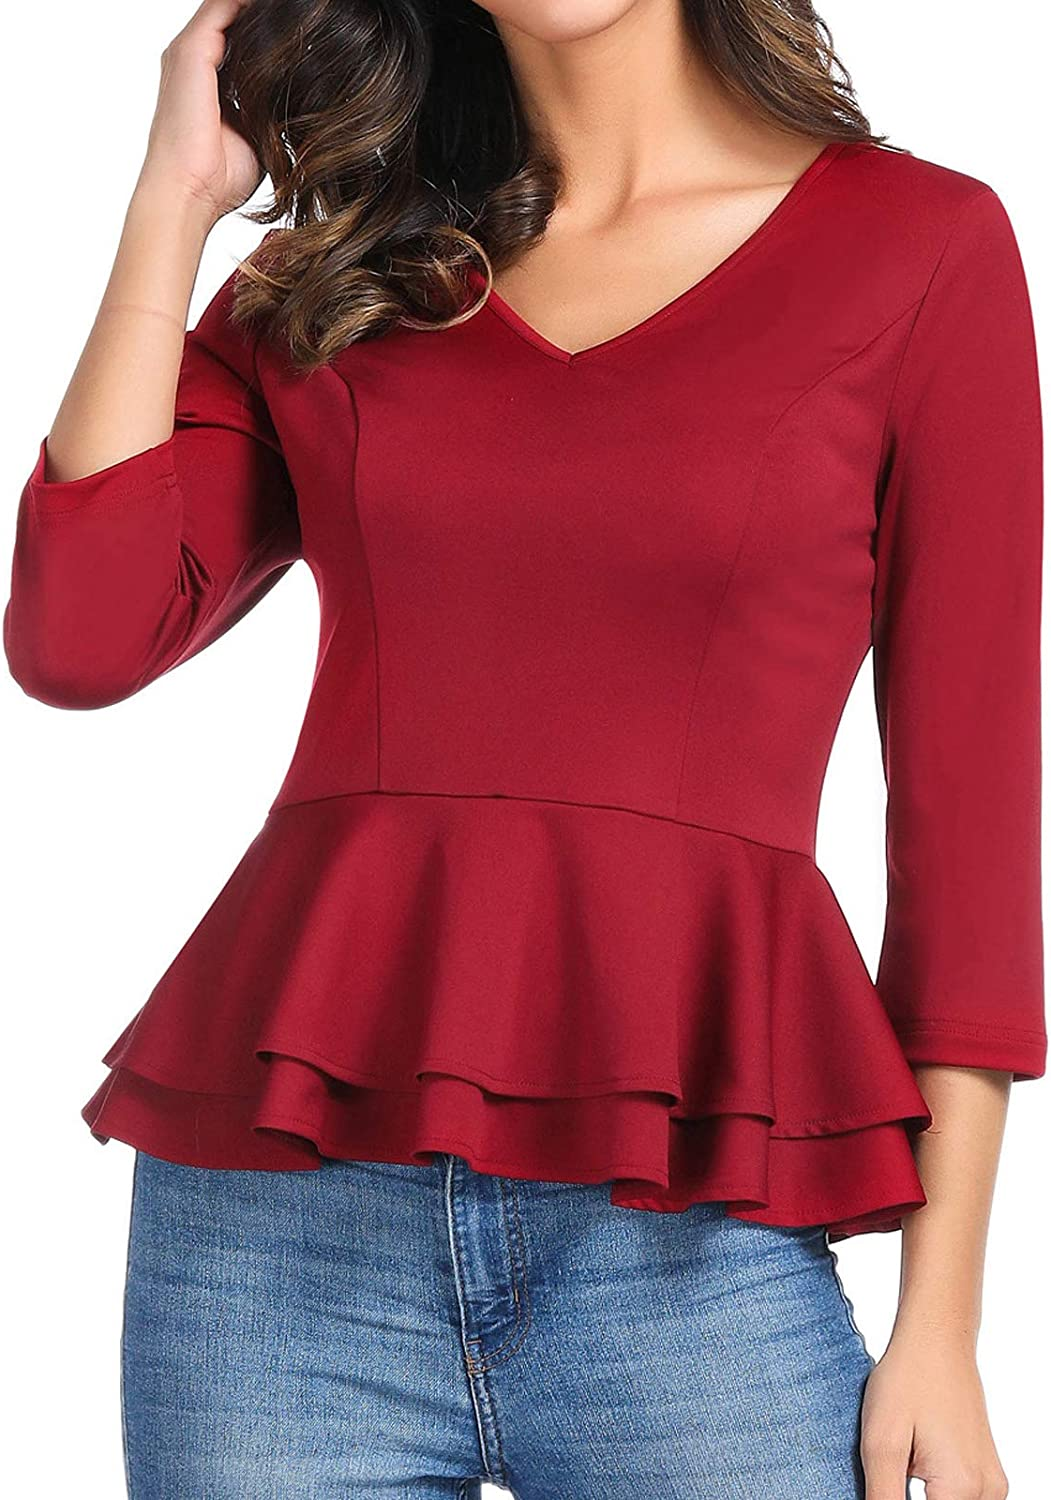 GRACE KARIN Women's Casual 3 4 Sleeve VNeck Stretchy Ruffled TShirt Top Blouse